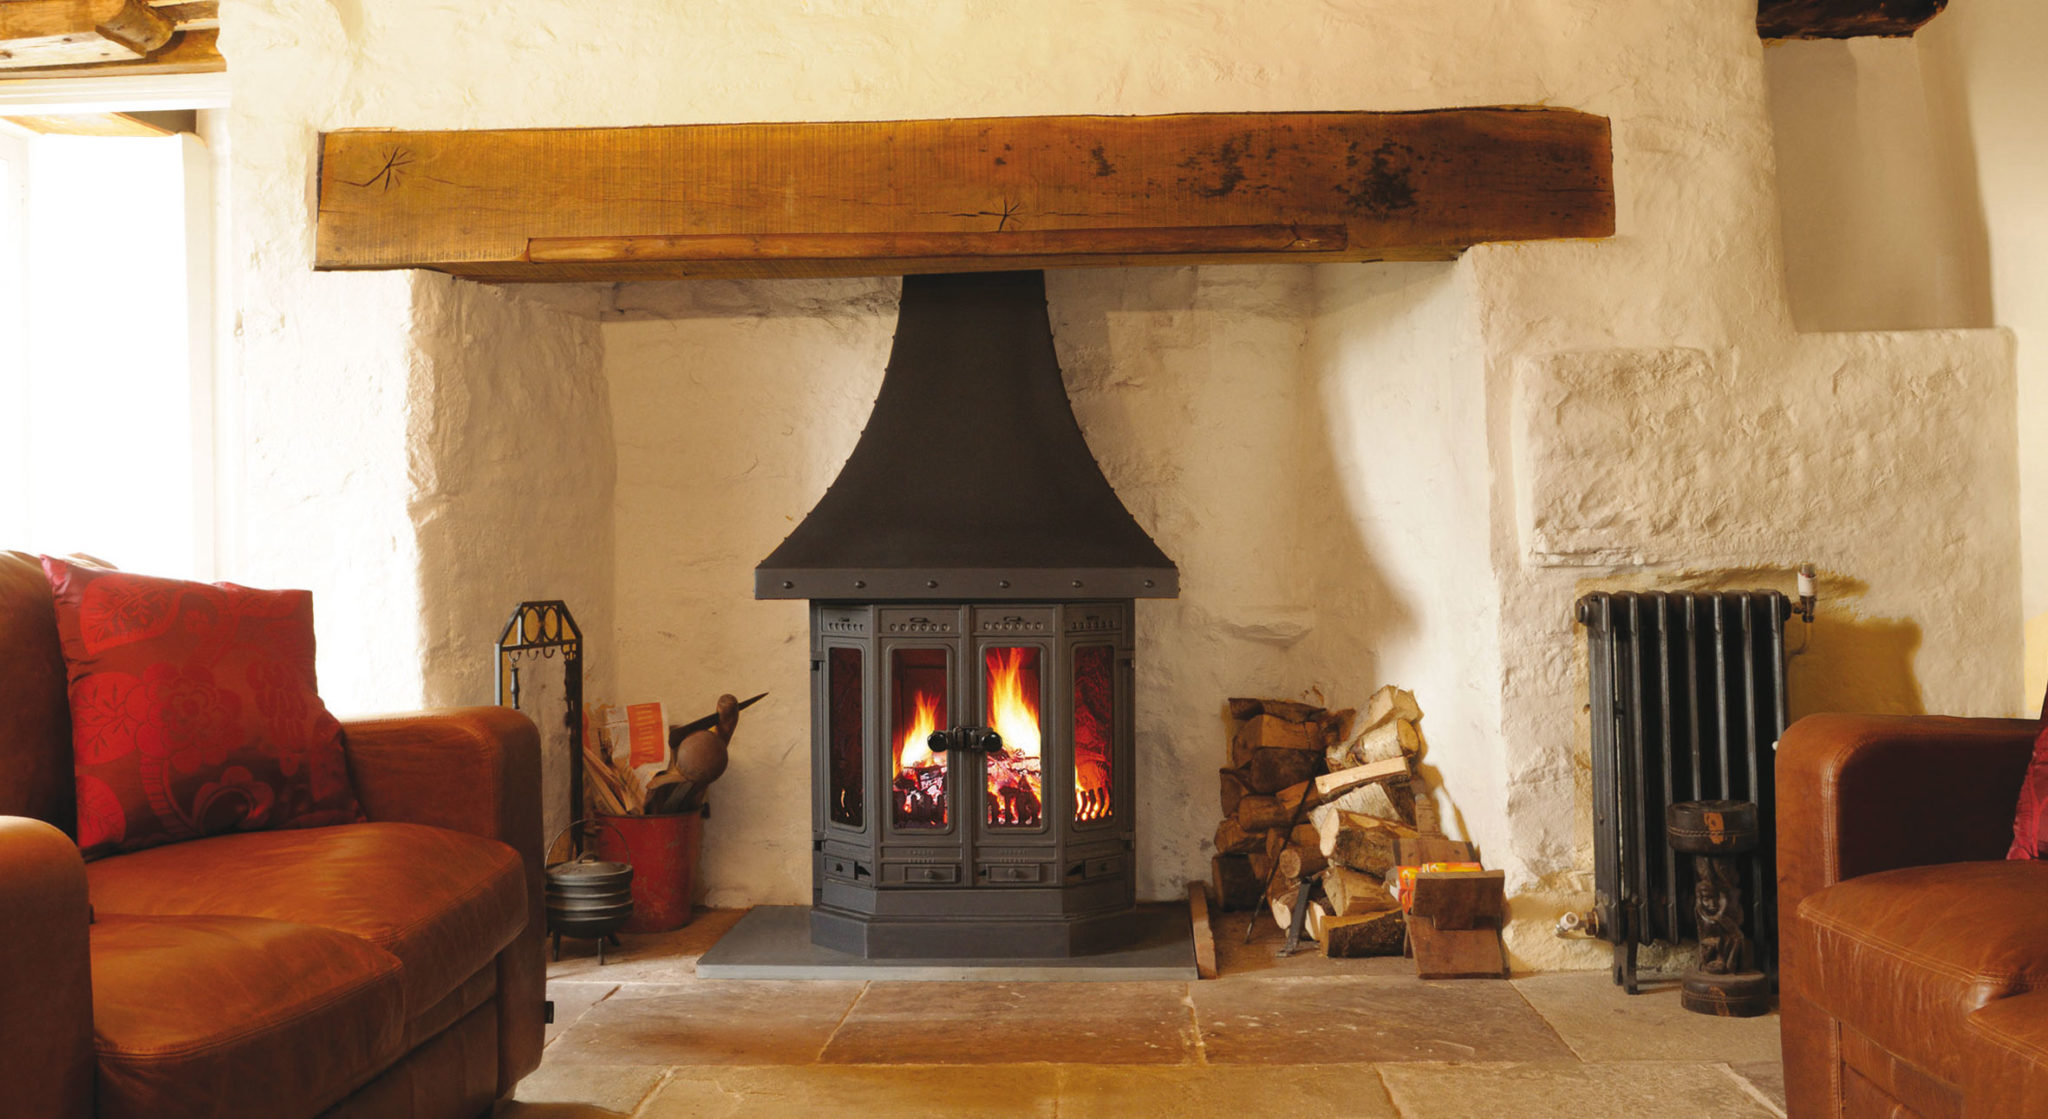 Top 5 Reasons to Choose a Dovre Wood Burning Fireplace